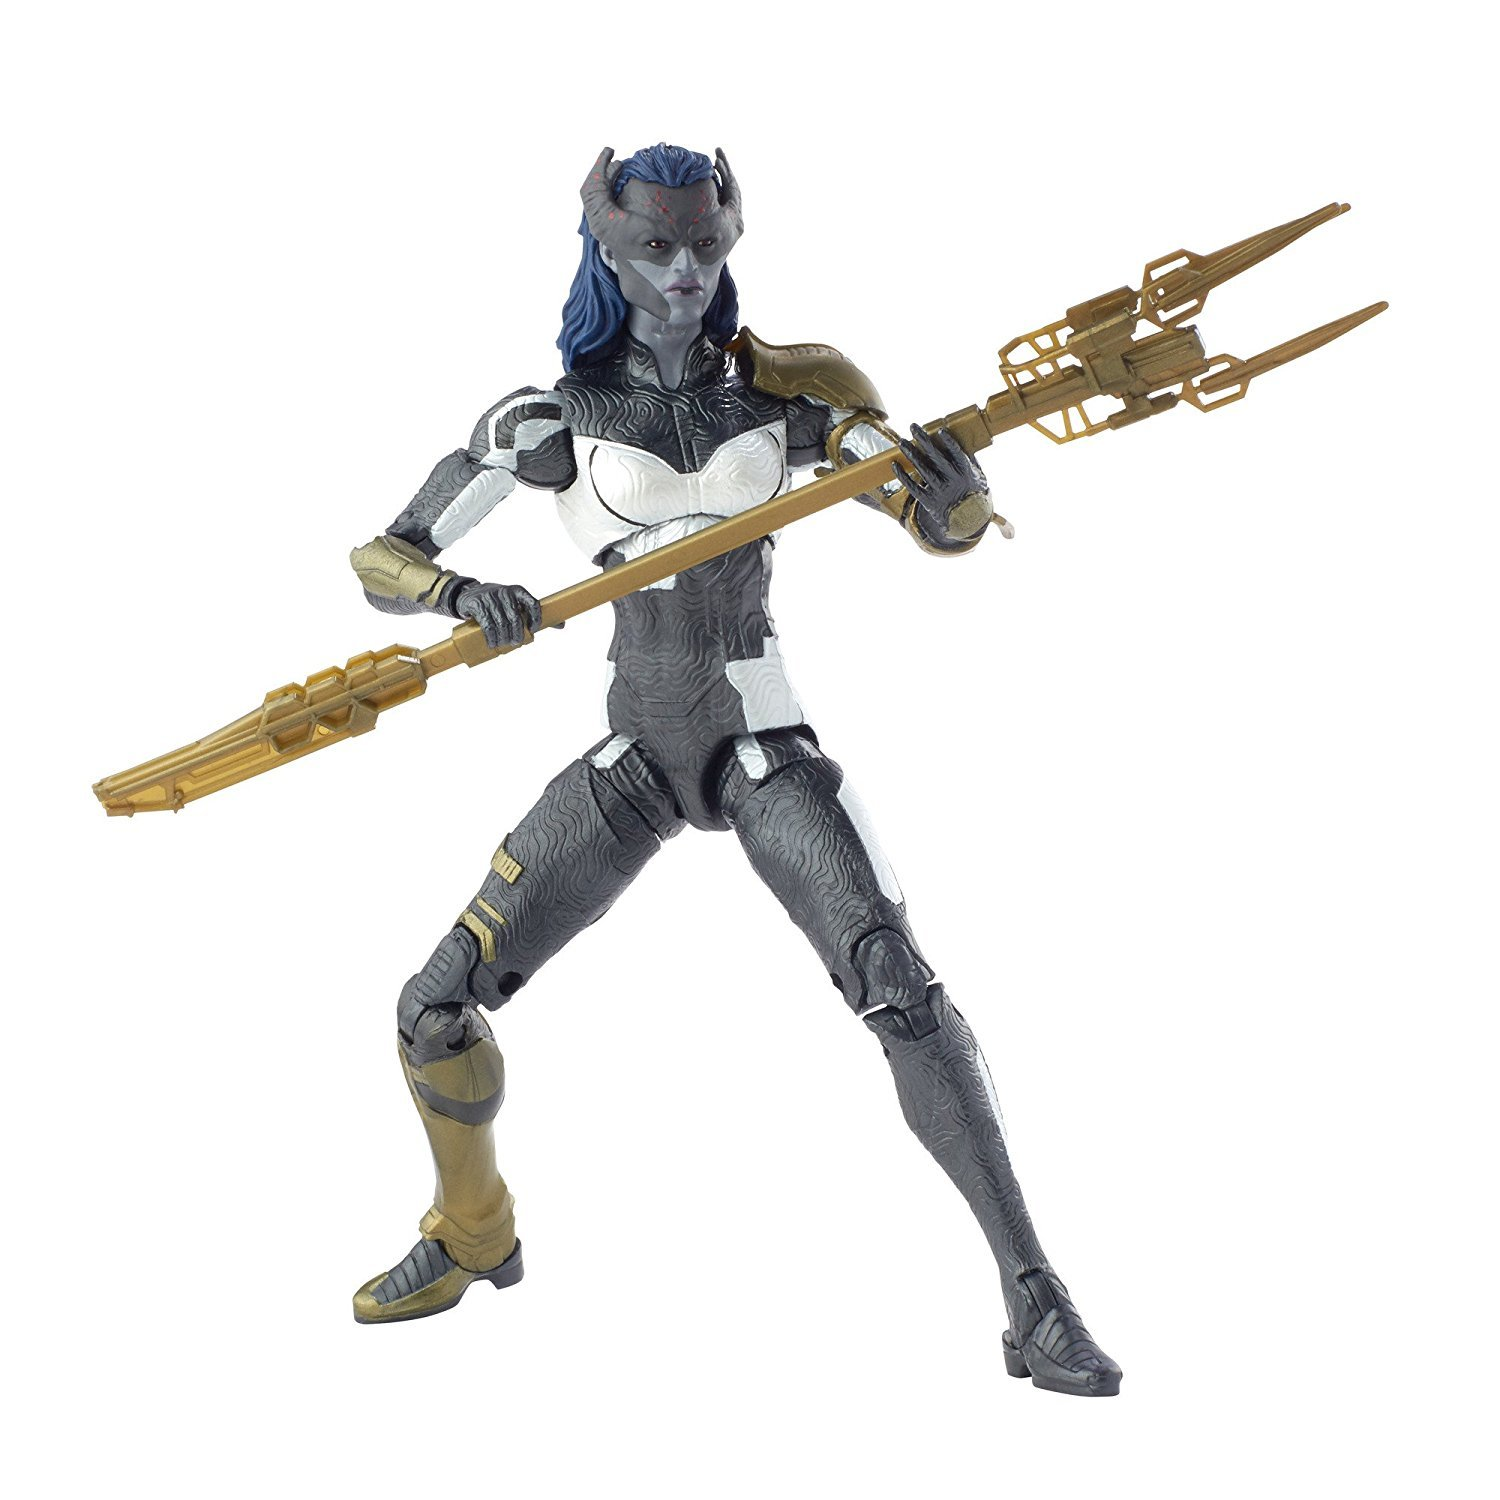 Marvel Legends Avengers Infinity War 6 Inch Proxima Midnight